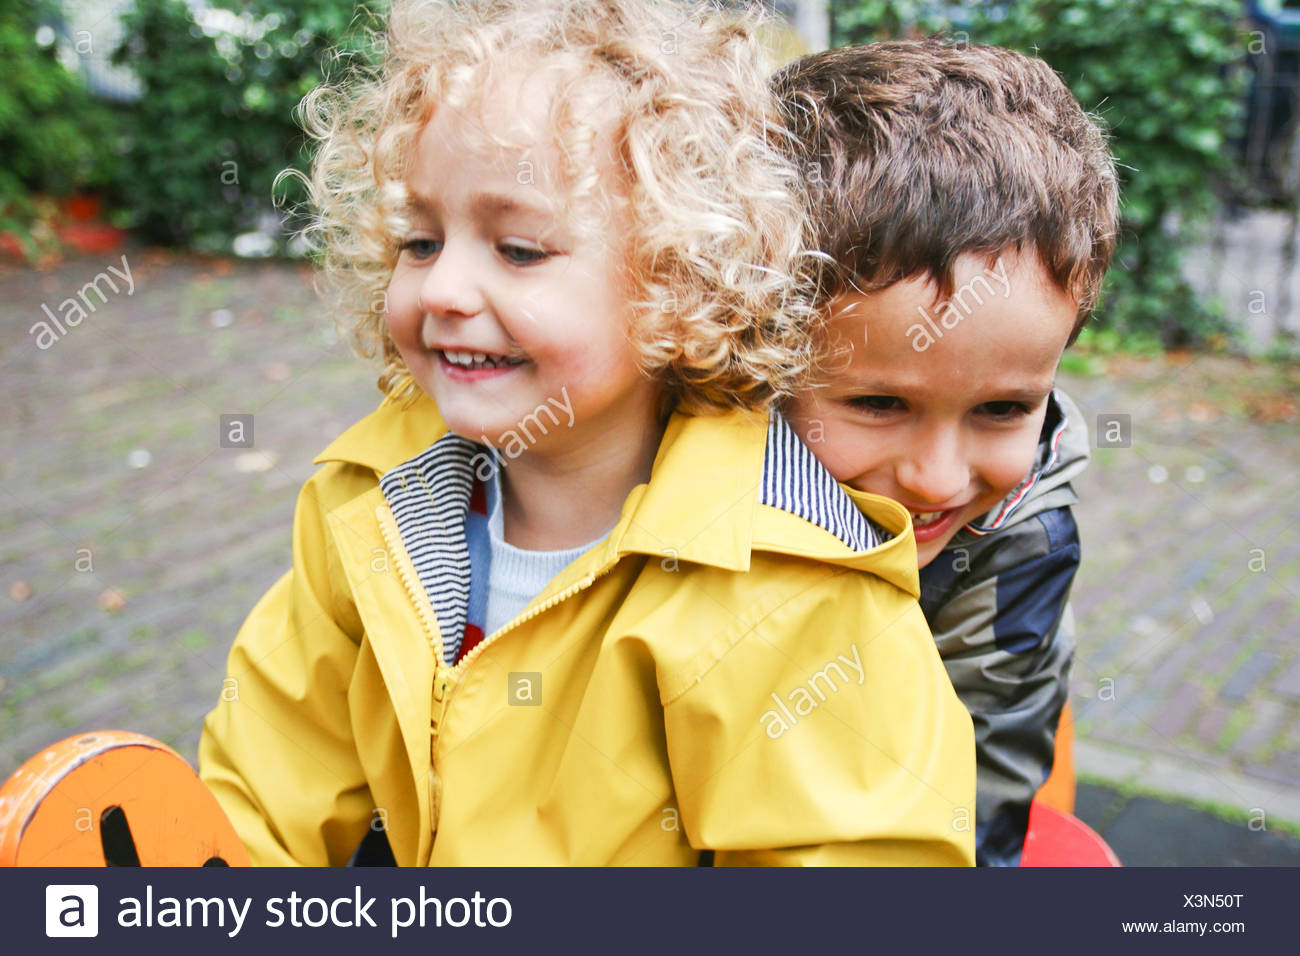 Smiling Boy spring ride in playground Photo Stock